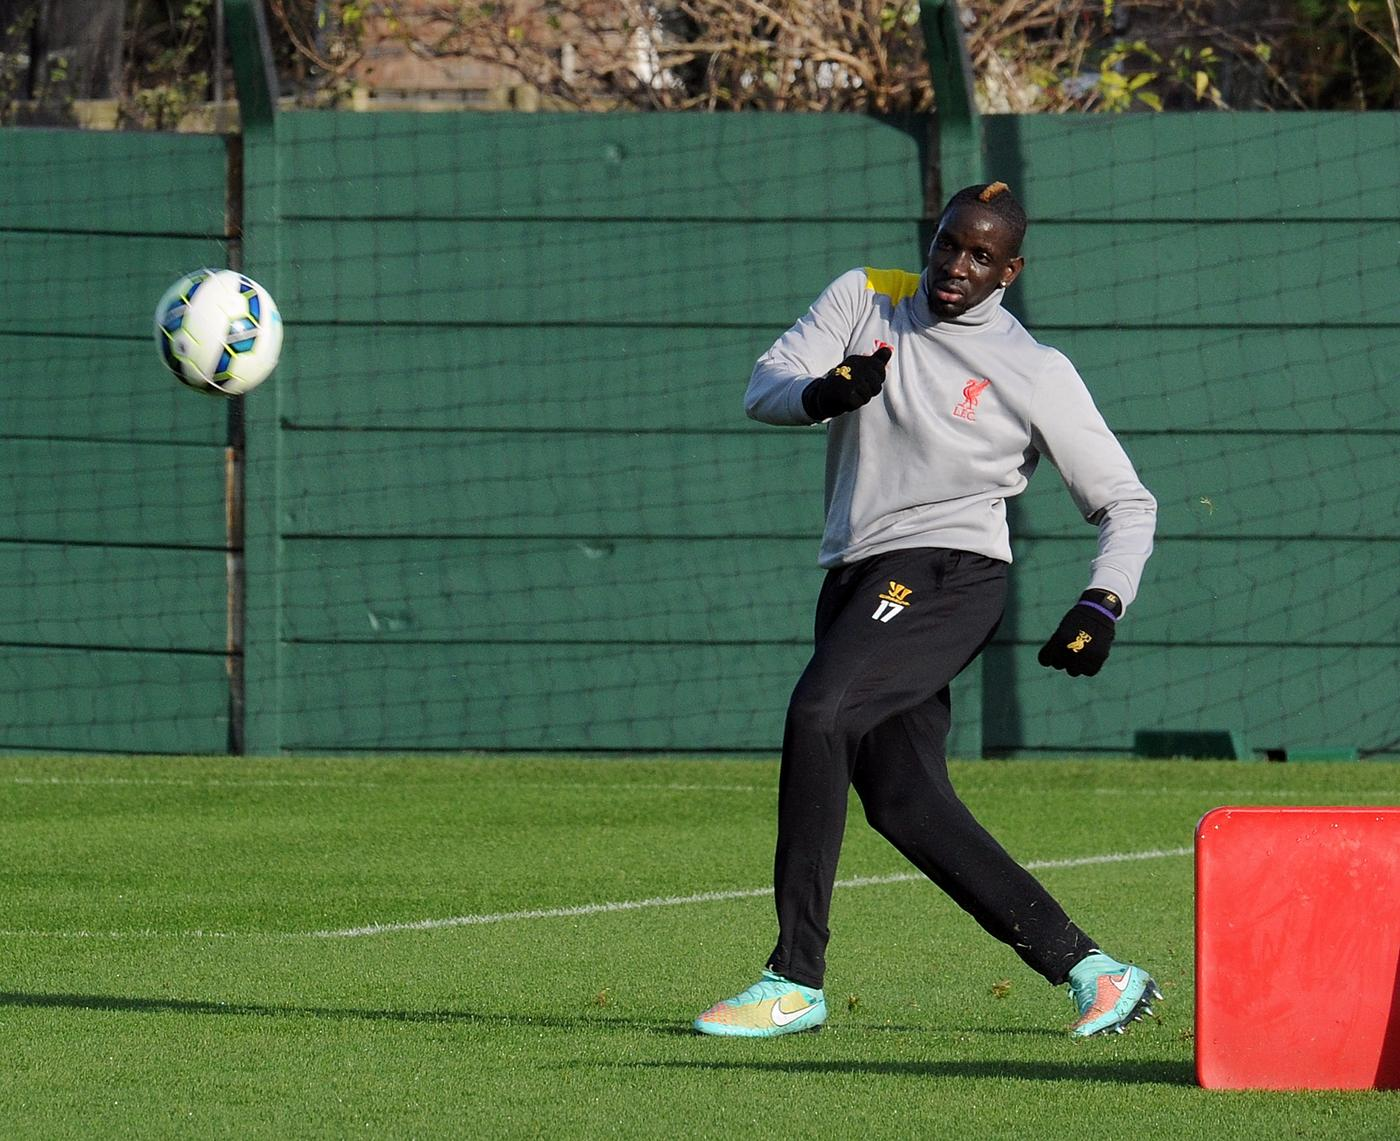 Liverpool boss Brendan Rodgers must swallow his pride and bring back Mamadou Sakho and Fabio Borini